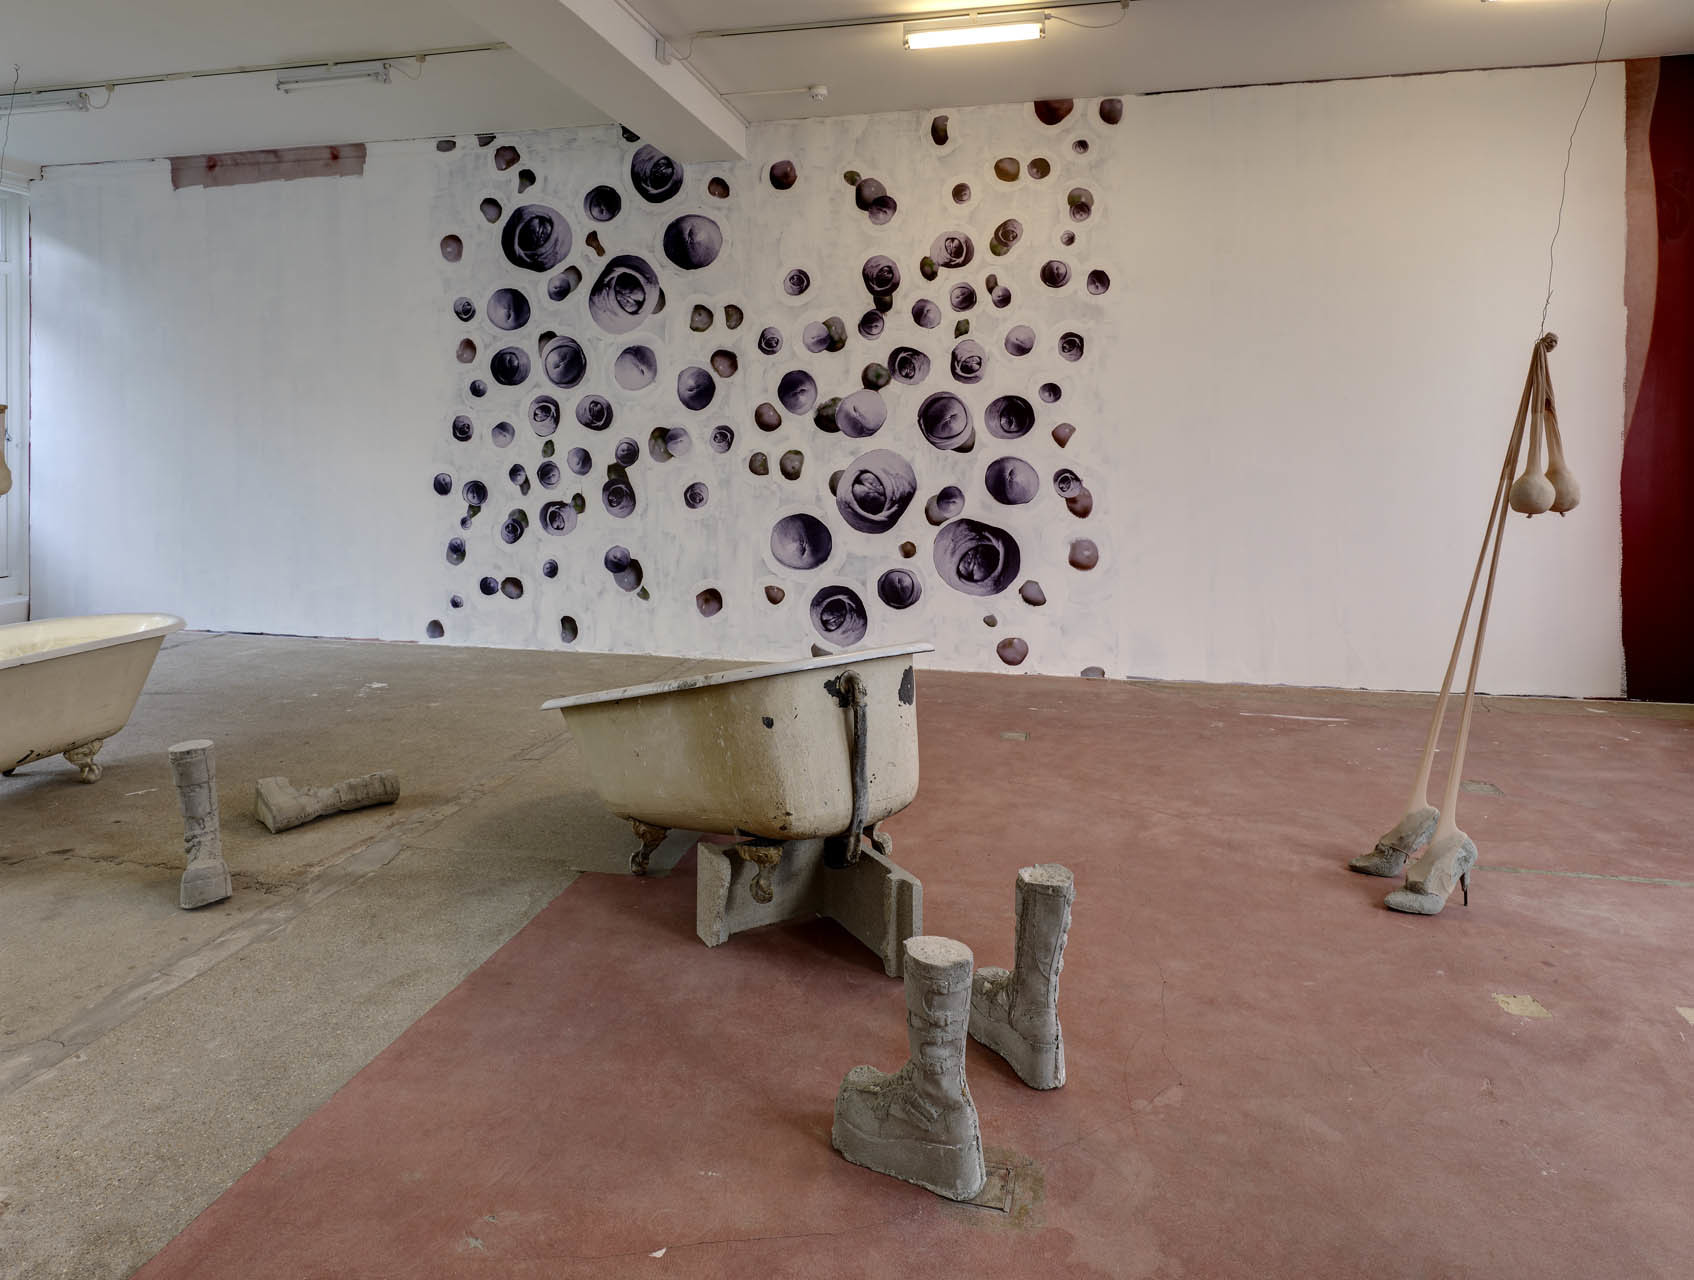 "<div class=""artwork_caption""><p>Installation view, 2013</p></div>"